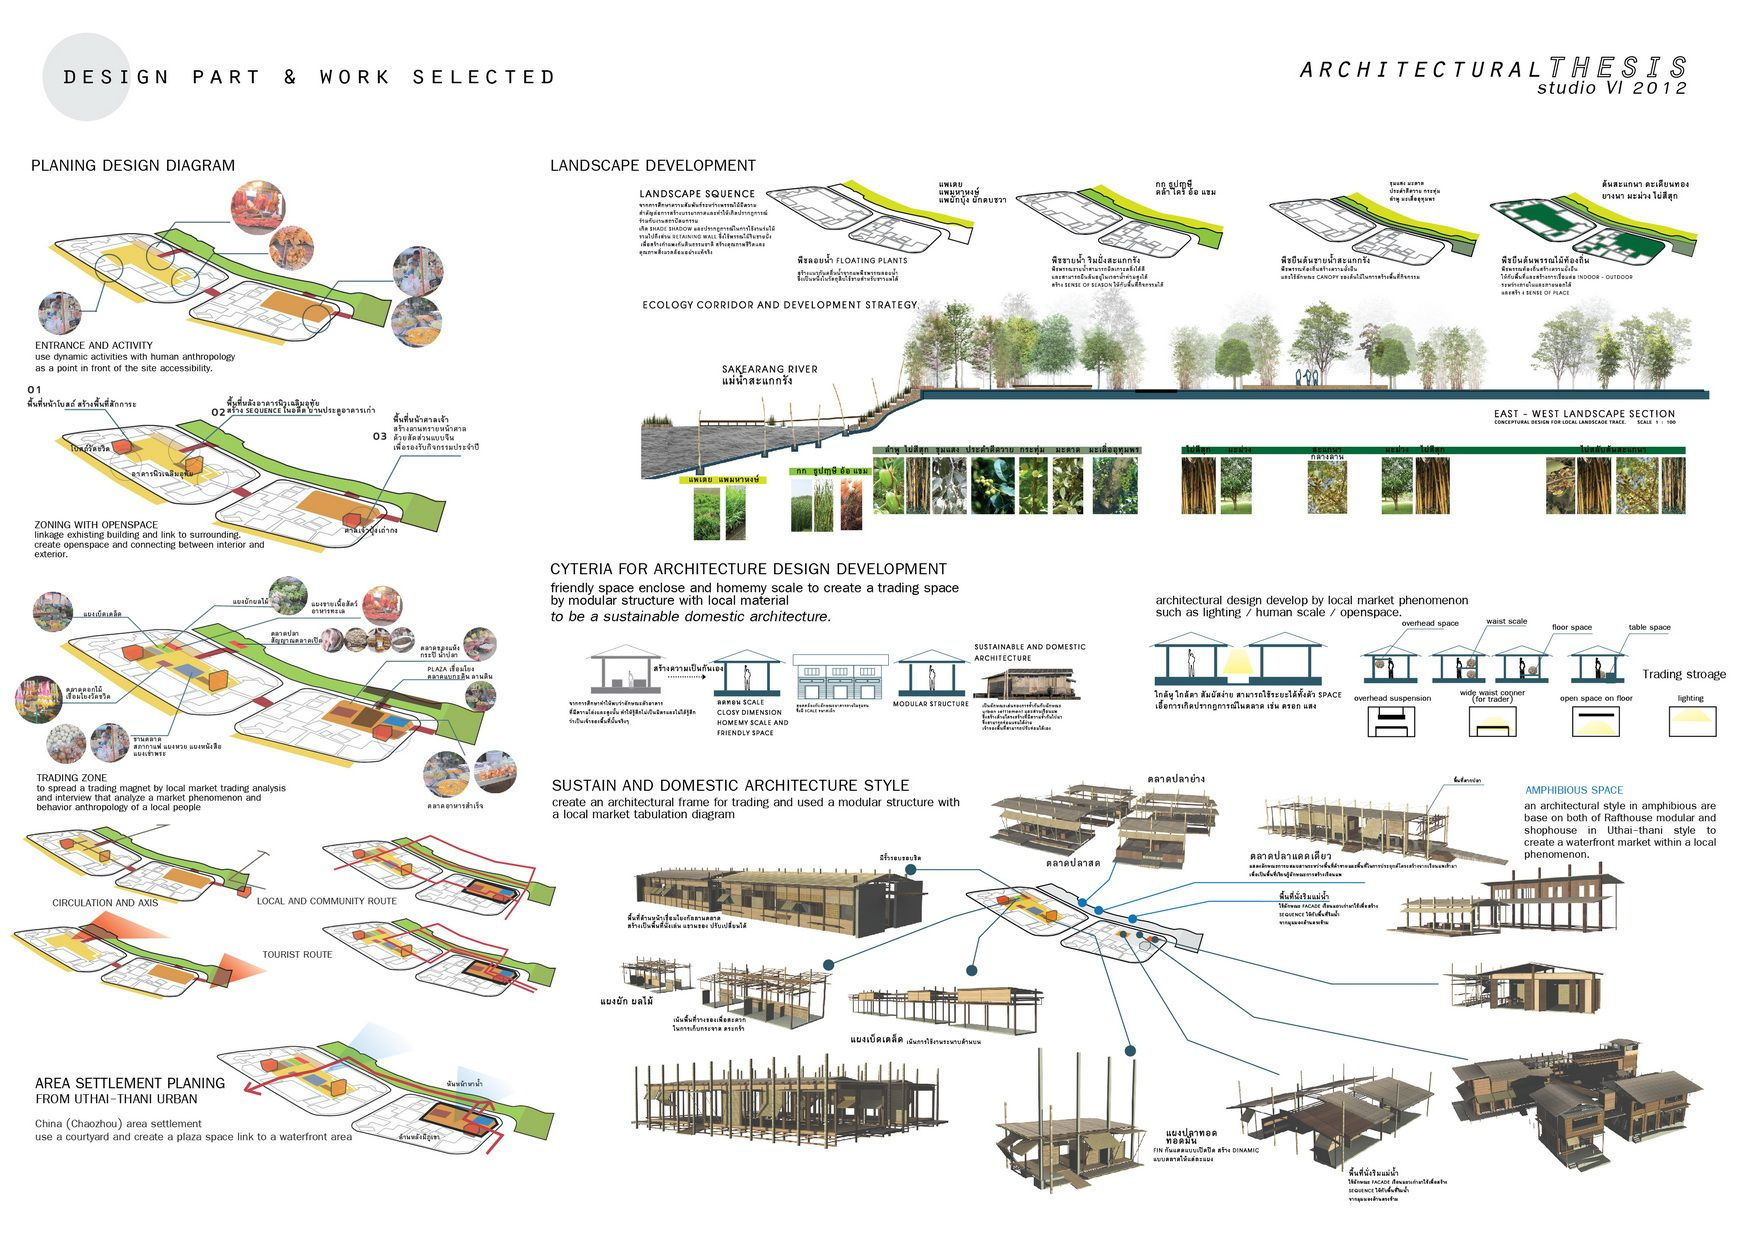 Local Market Market Design Architecture Thesis - Thesis Title Ideas For  College